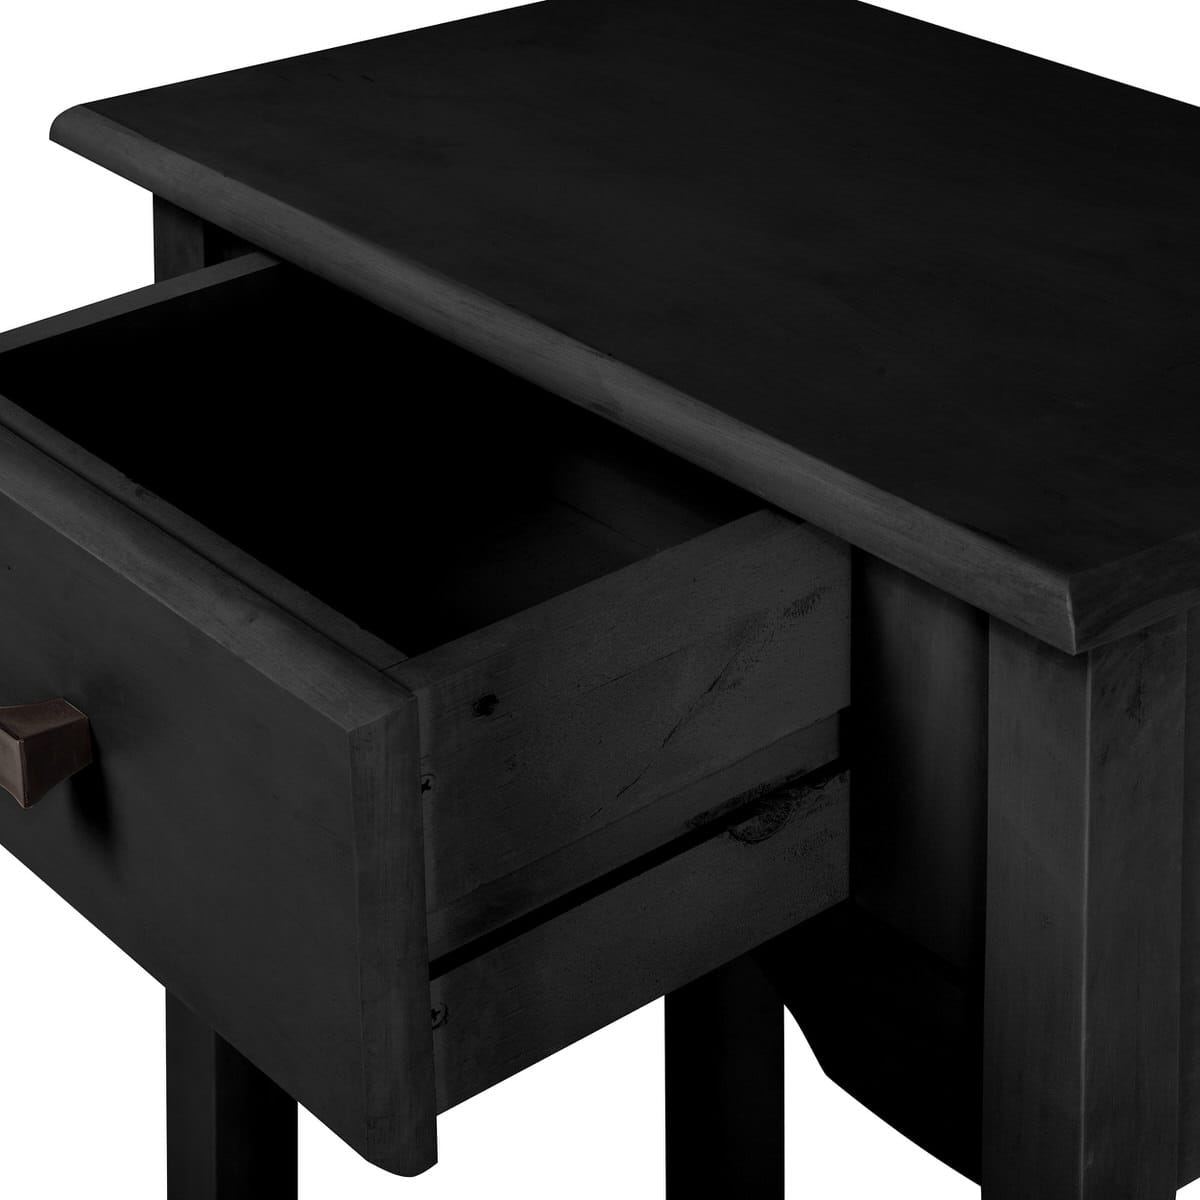 Jay Black Wash 3543 Inch Tall End Table W 1 Full Extension Drawer